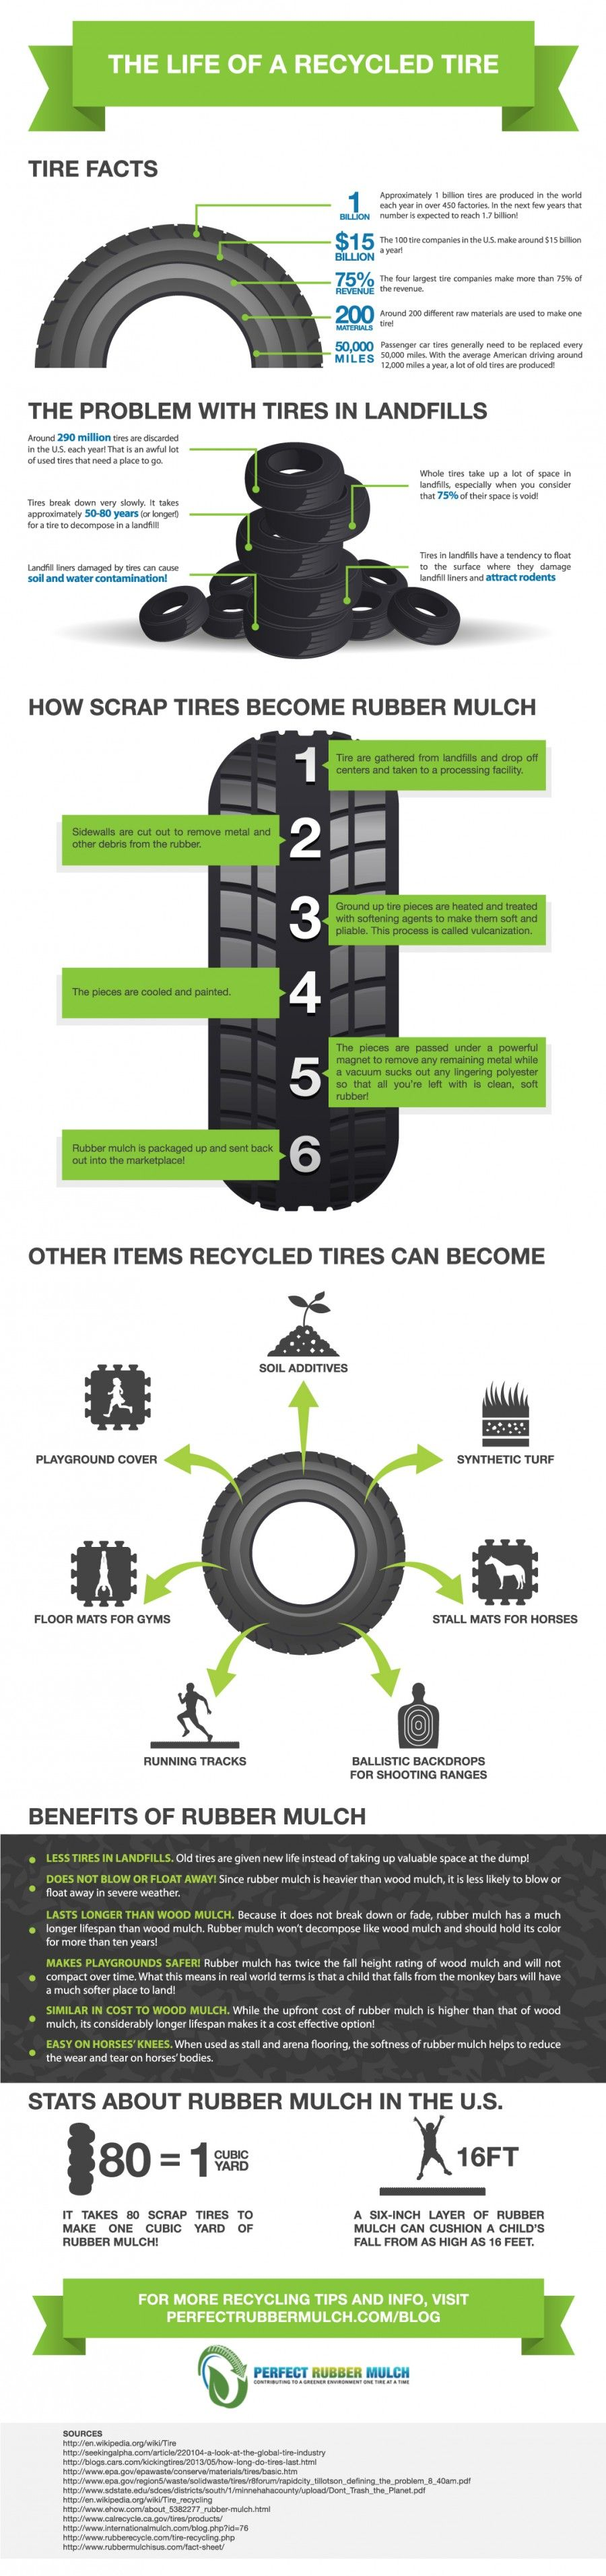 How to Recycle Tires Rubber mulch, Tyres recycle, Used tires